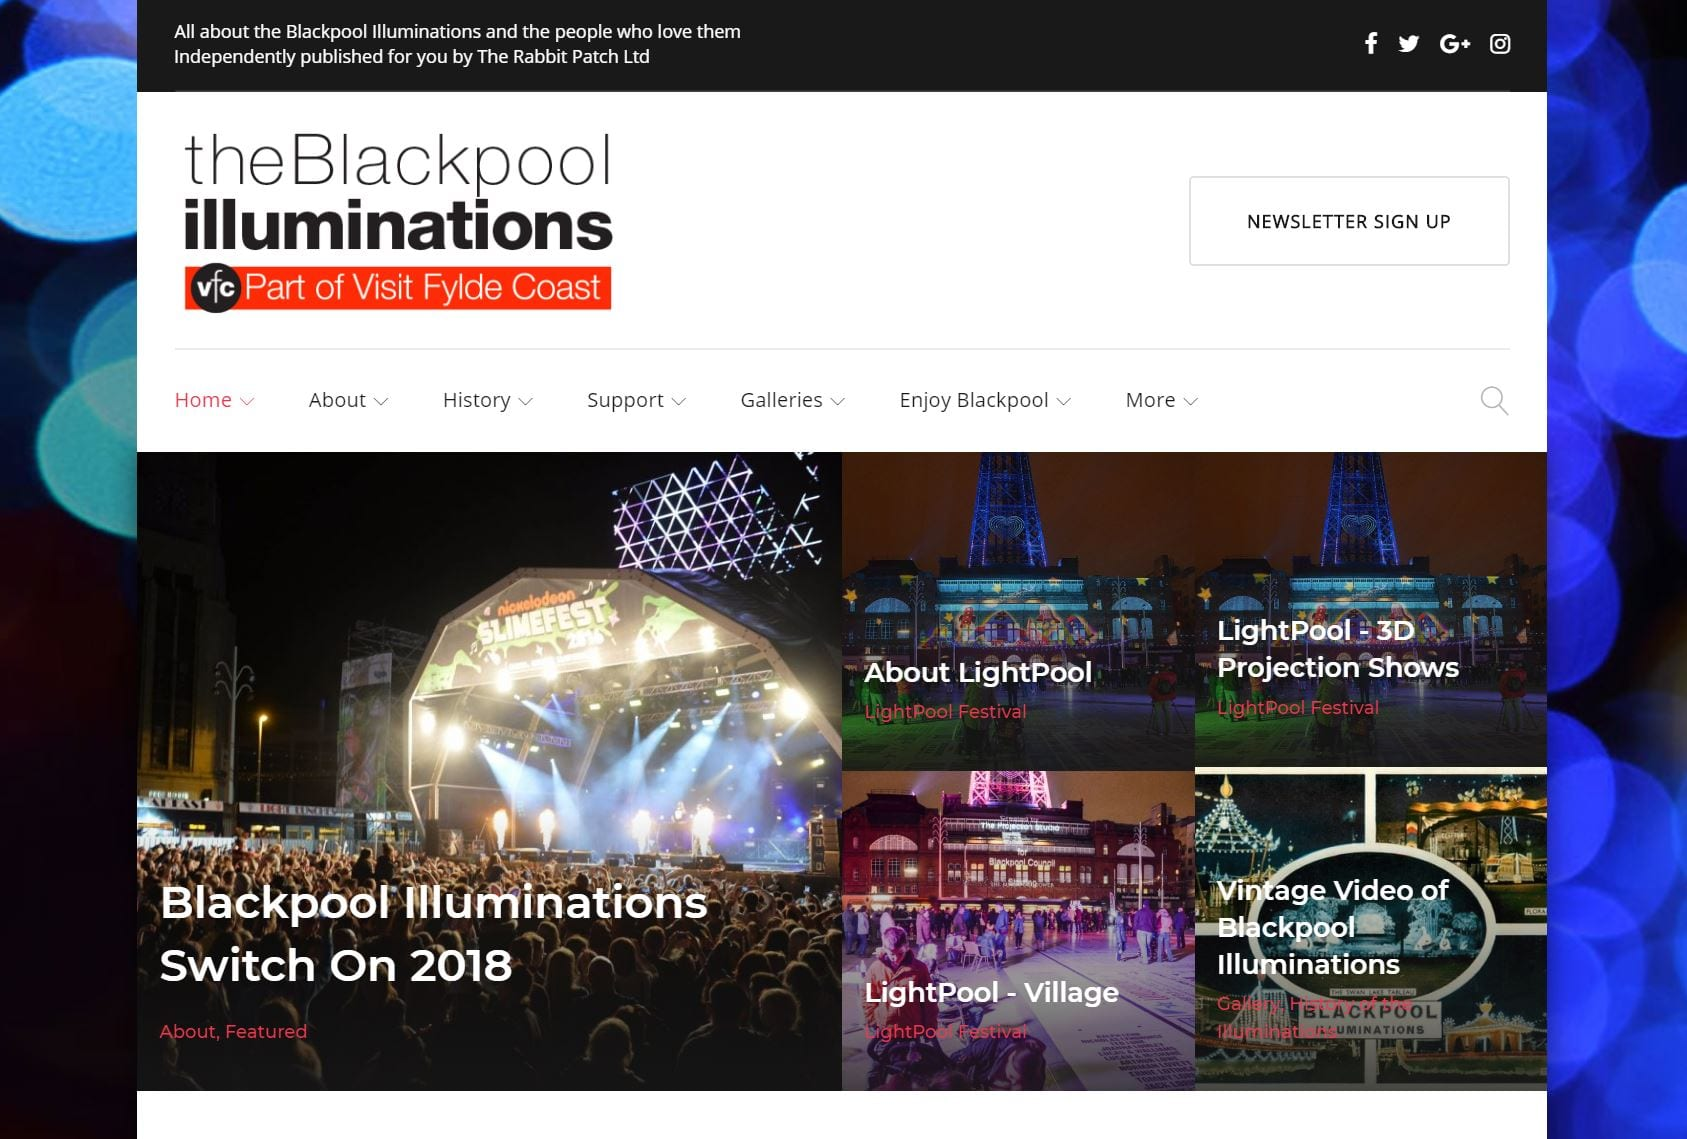 theBlackpoolilluminations.info website, LightPool Festival